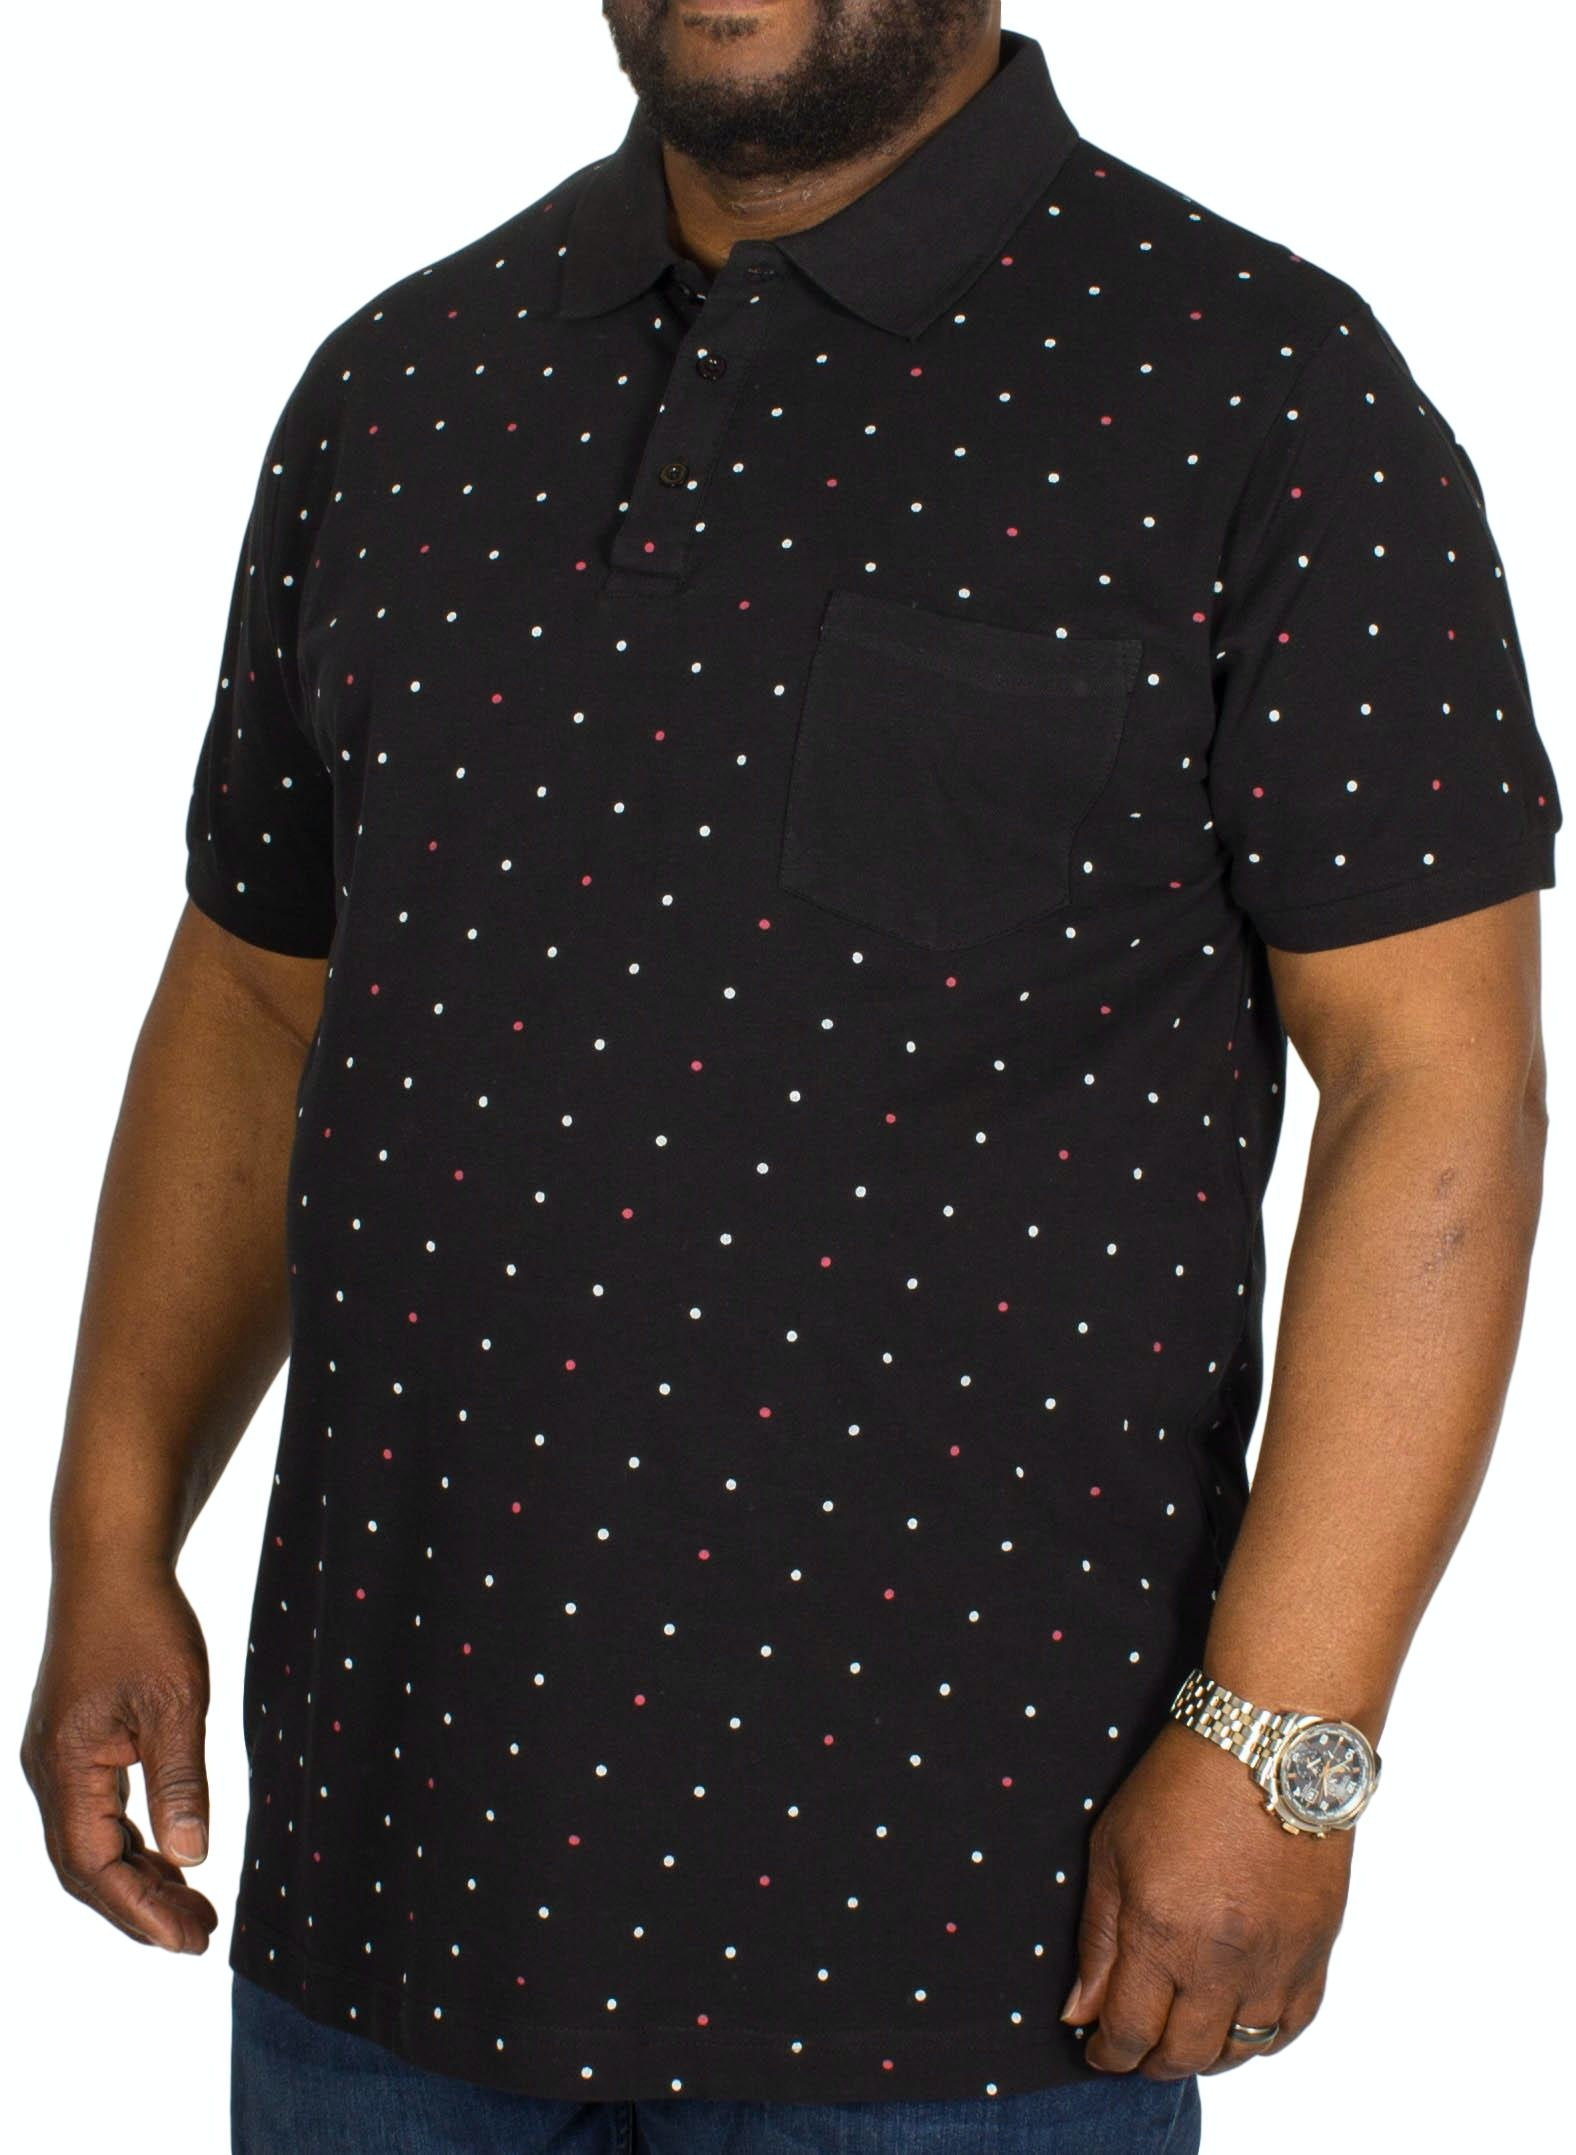 Bigdude Dotted Polo Shirt Black